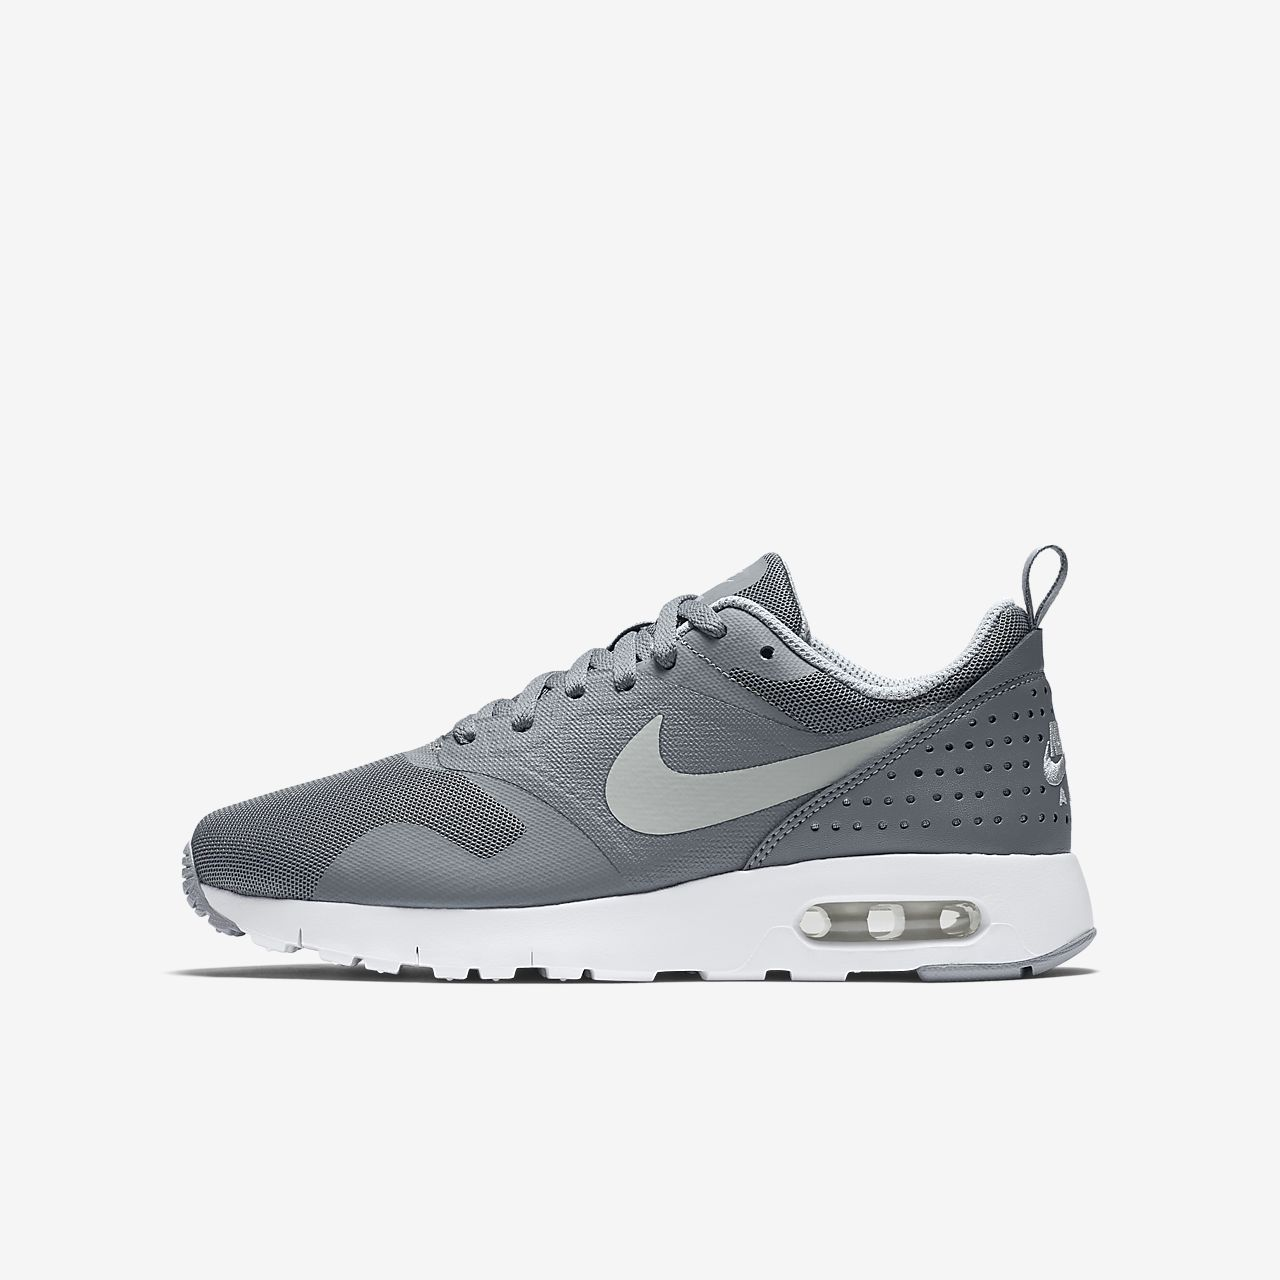 Nike Air Max Tavas Older Kids' Shoe Black DJ8076840